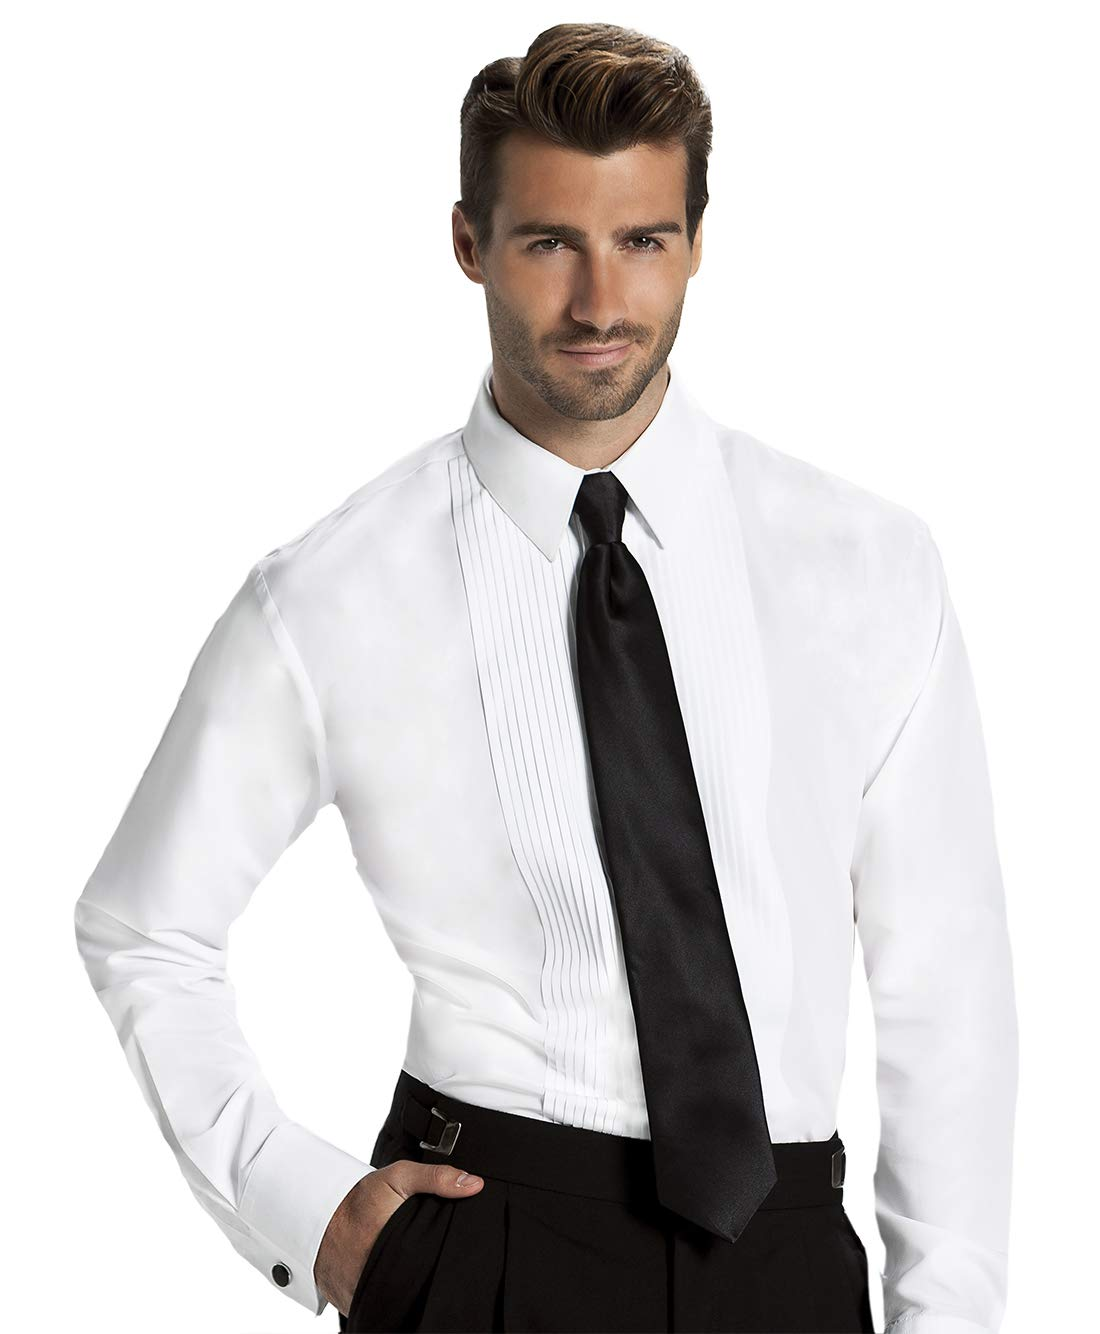 Men's Fitted 1/4 Inch Pleated Tuxedo Shirt, Laydown Collar Wing Collar by Formal Shirts